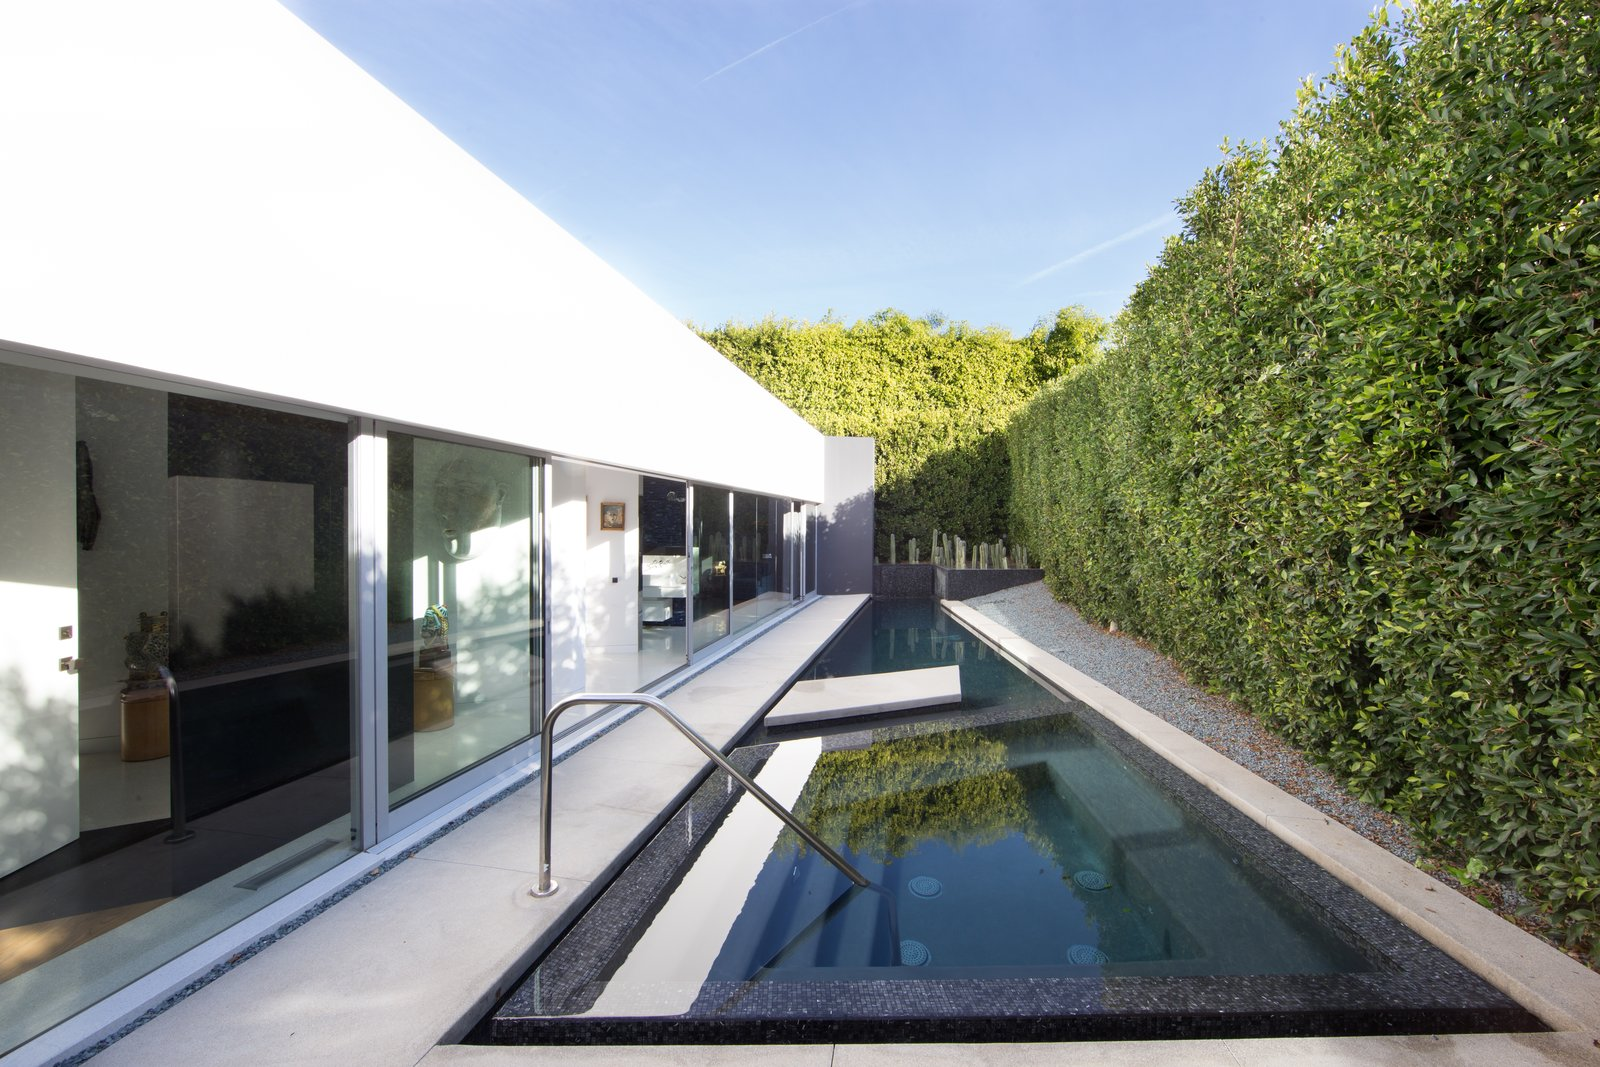 A jewel-like pool and spa fill the narrow master suite garden room.  A New Stage by EPTDESIGN